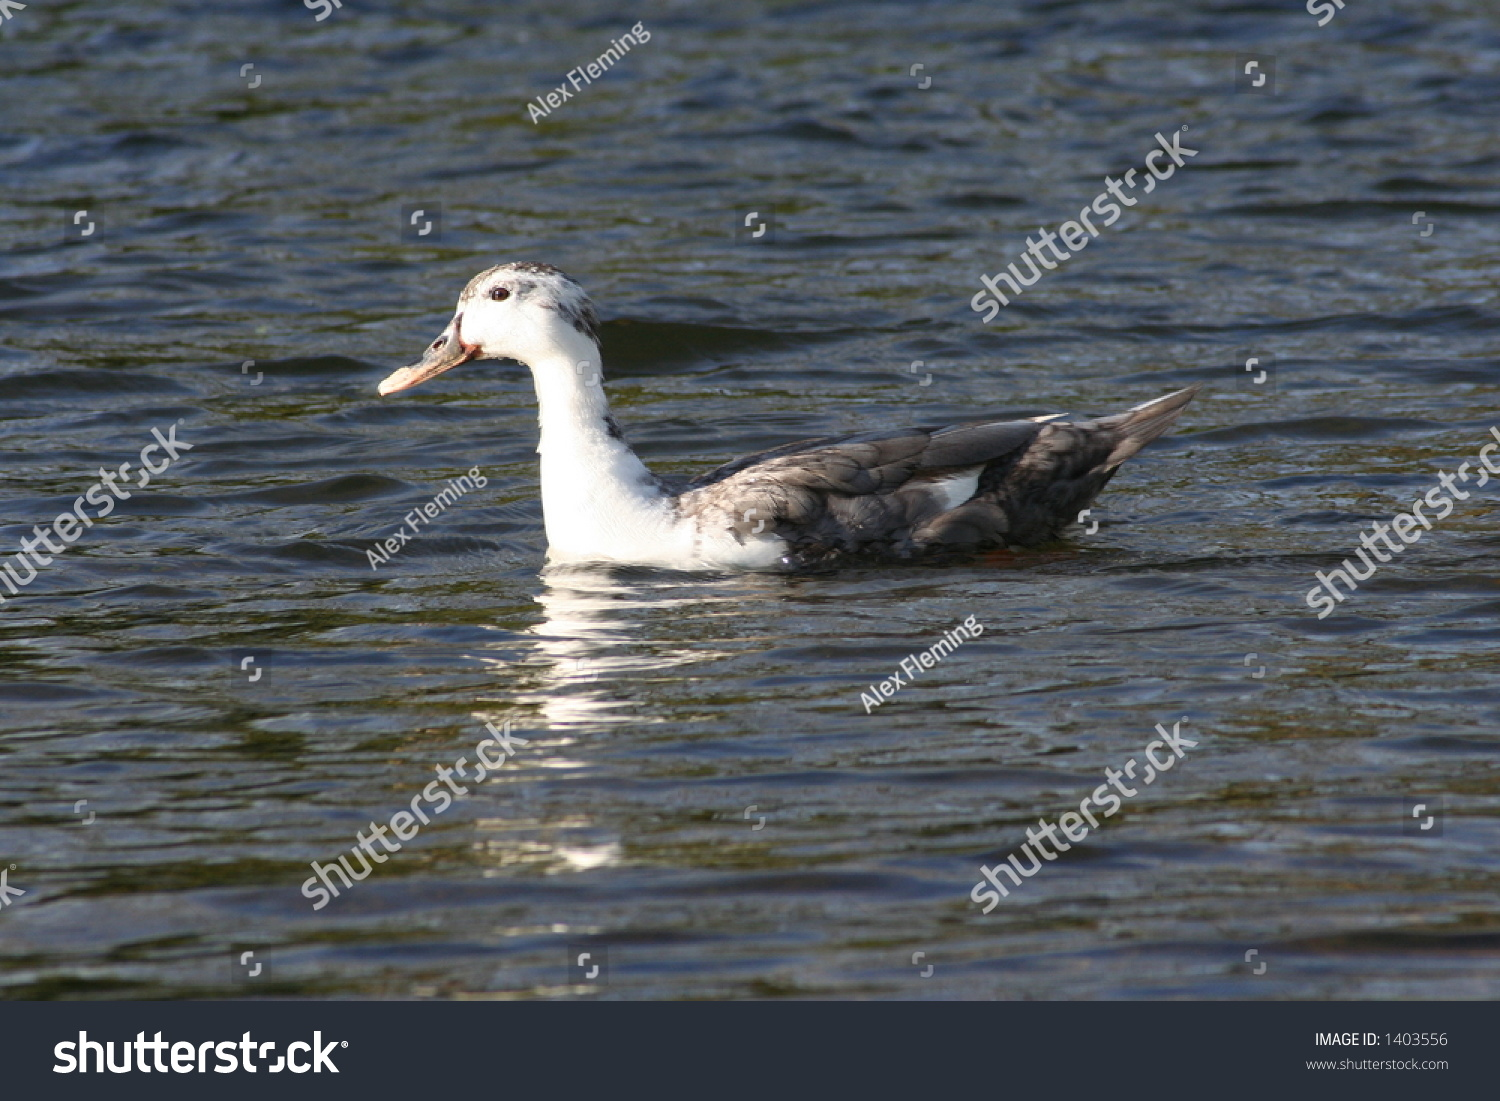 Duck Swimming In The River Stock Photo 1403556 : Shutterstock